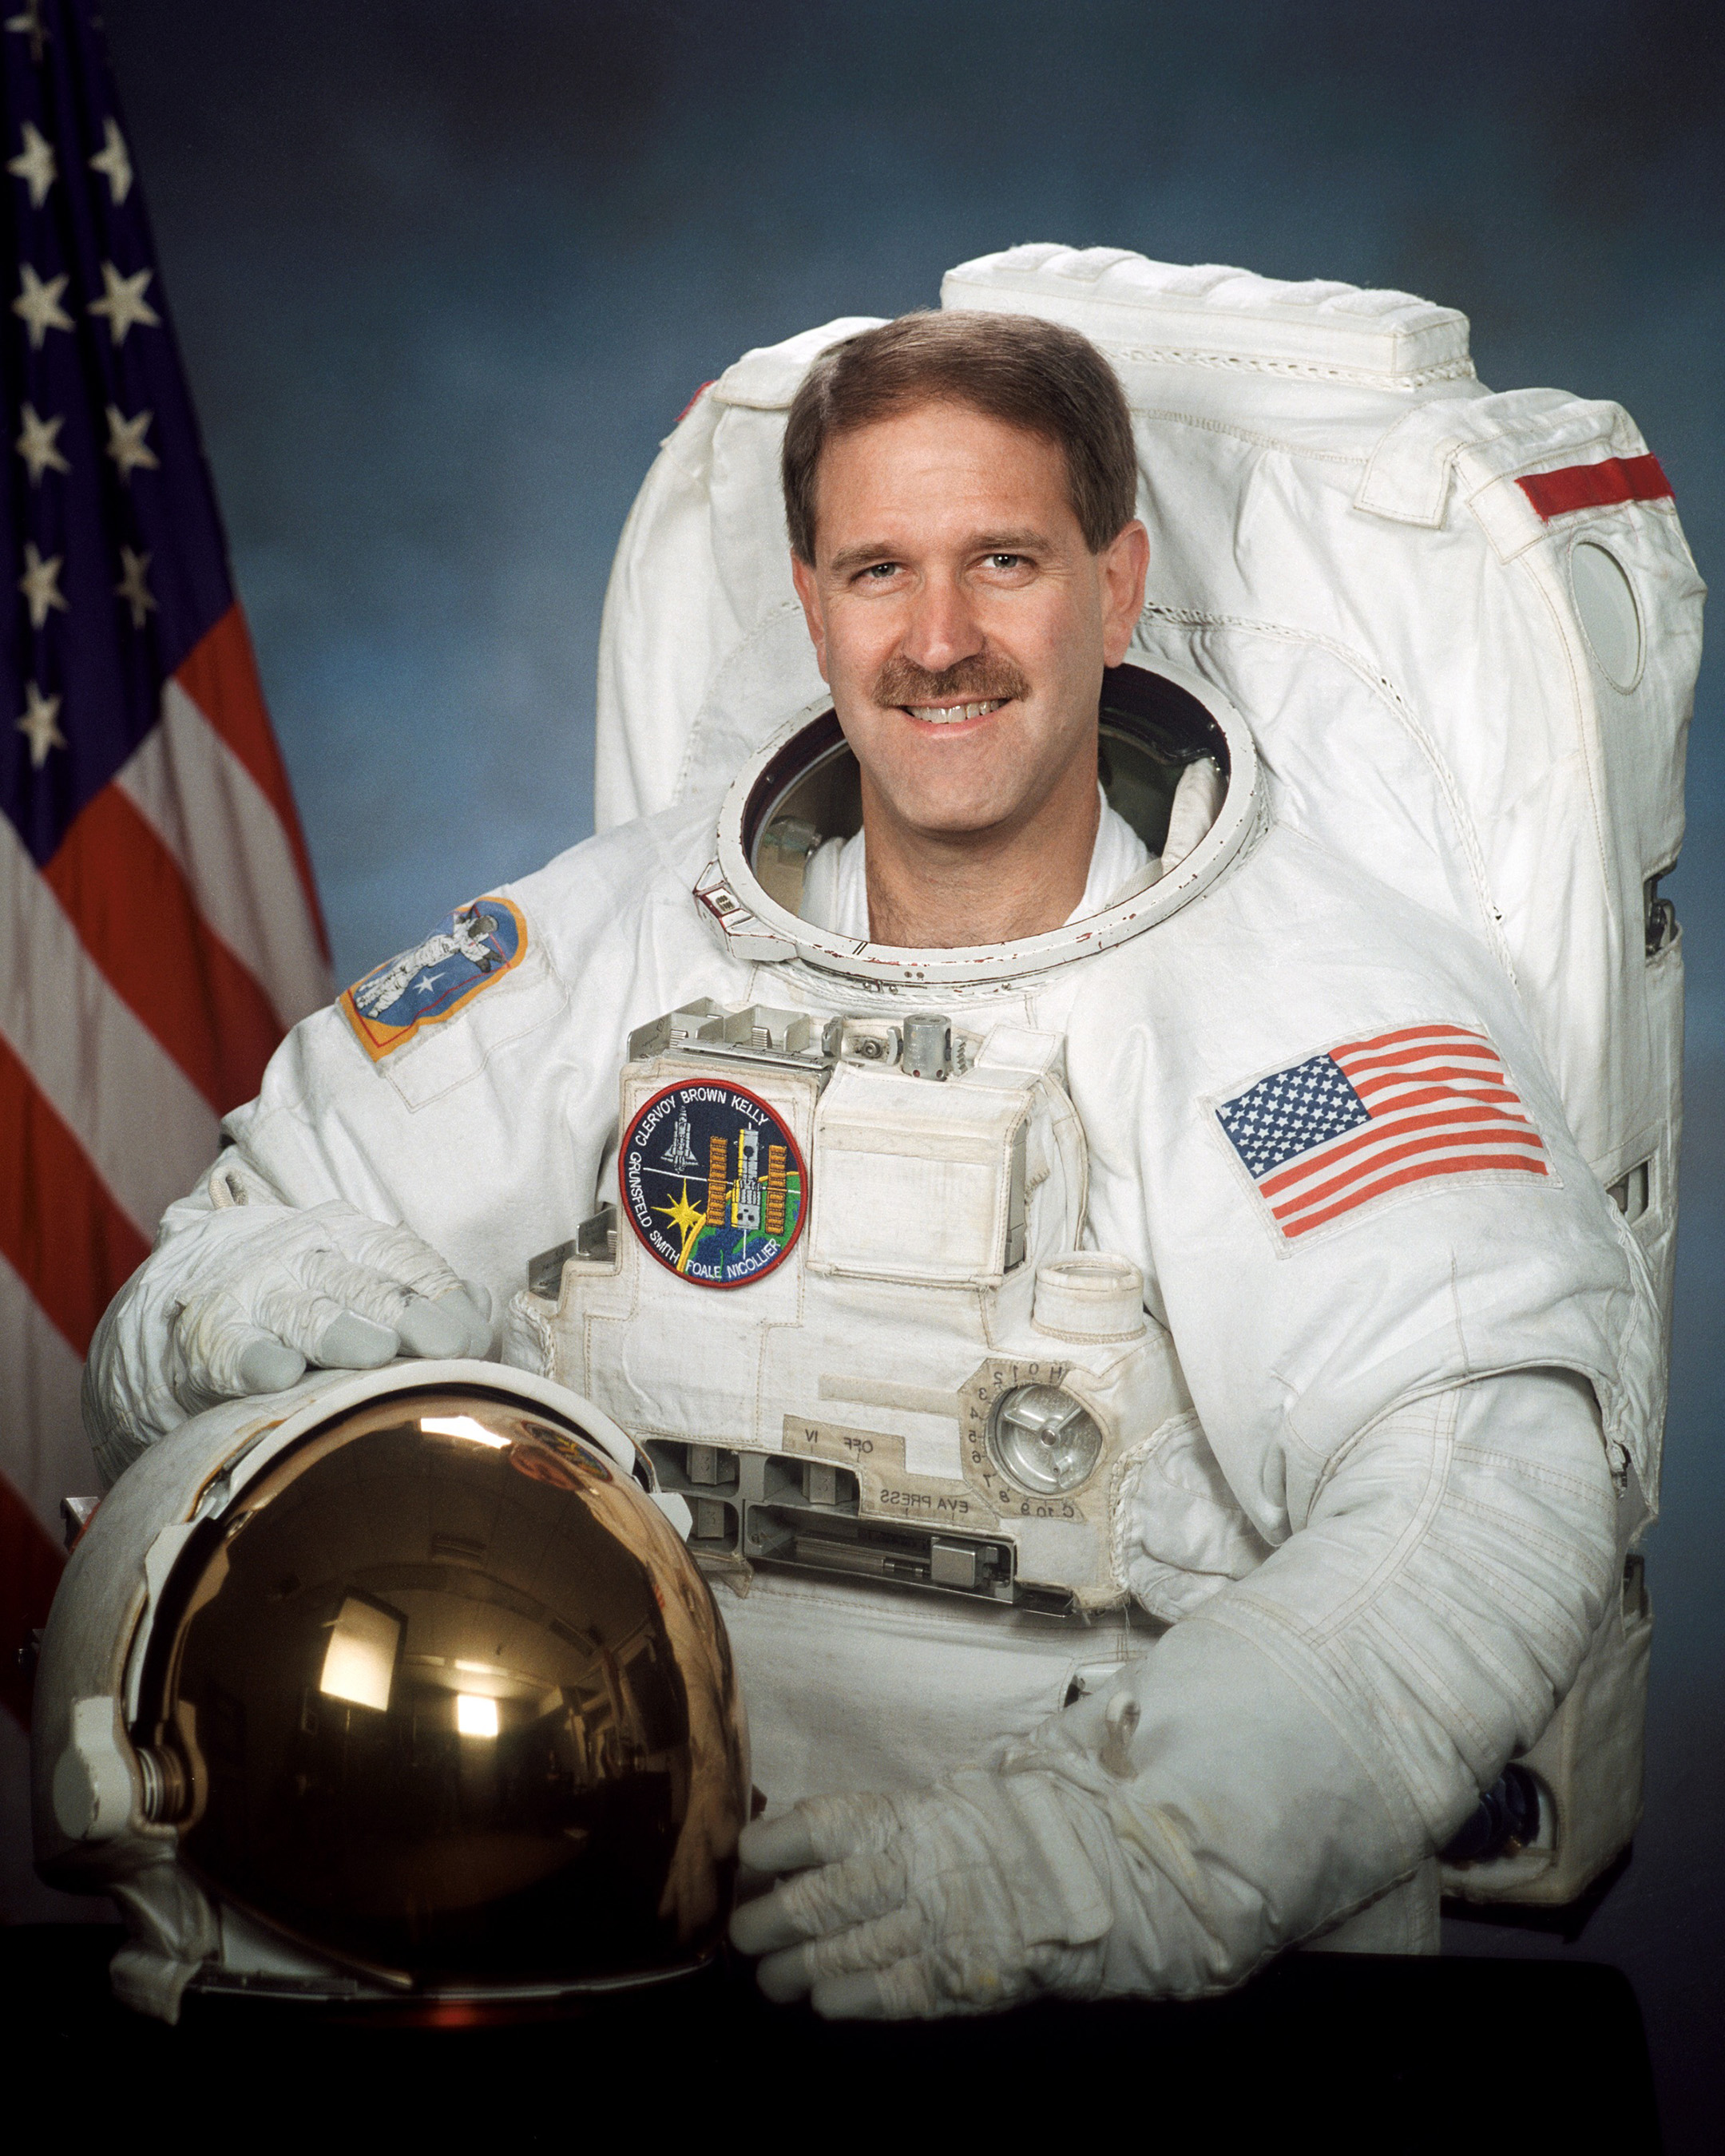 astronaut from nasa - photo #15